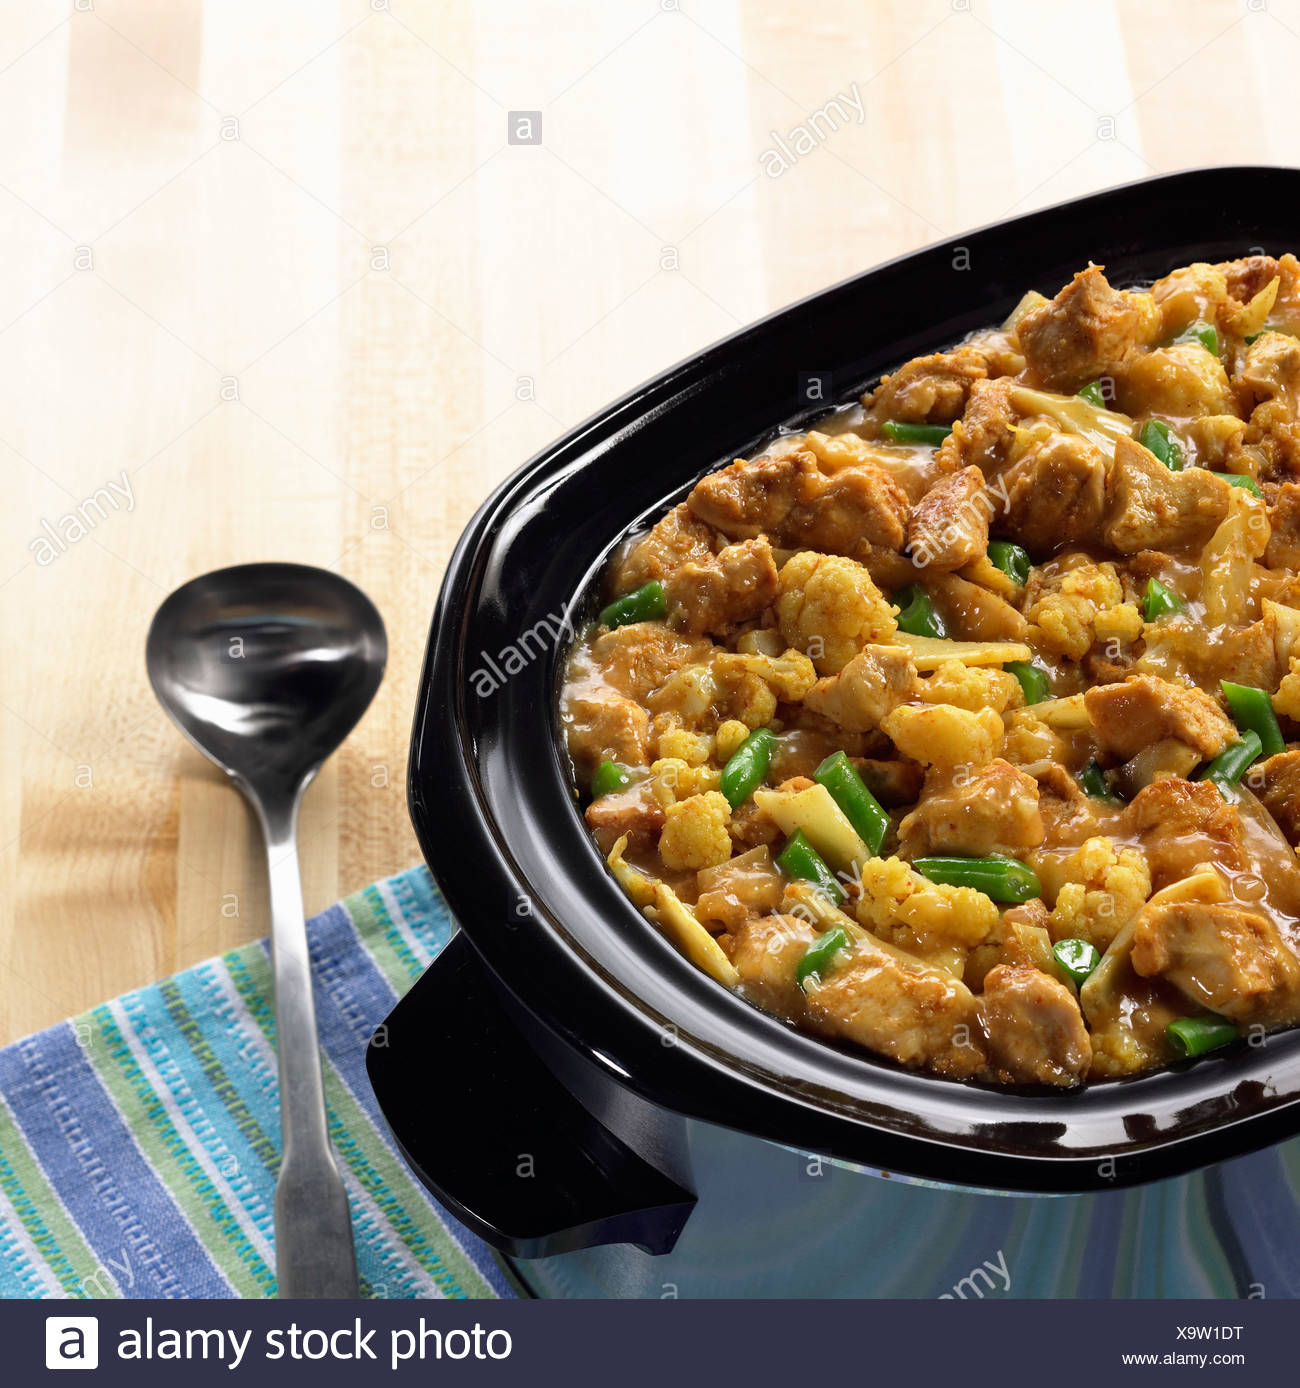 Curry chicken casserole - Stock Image